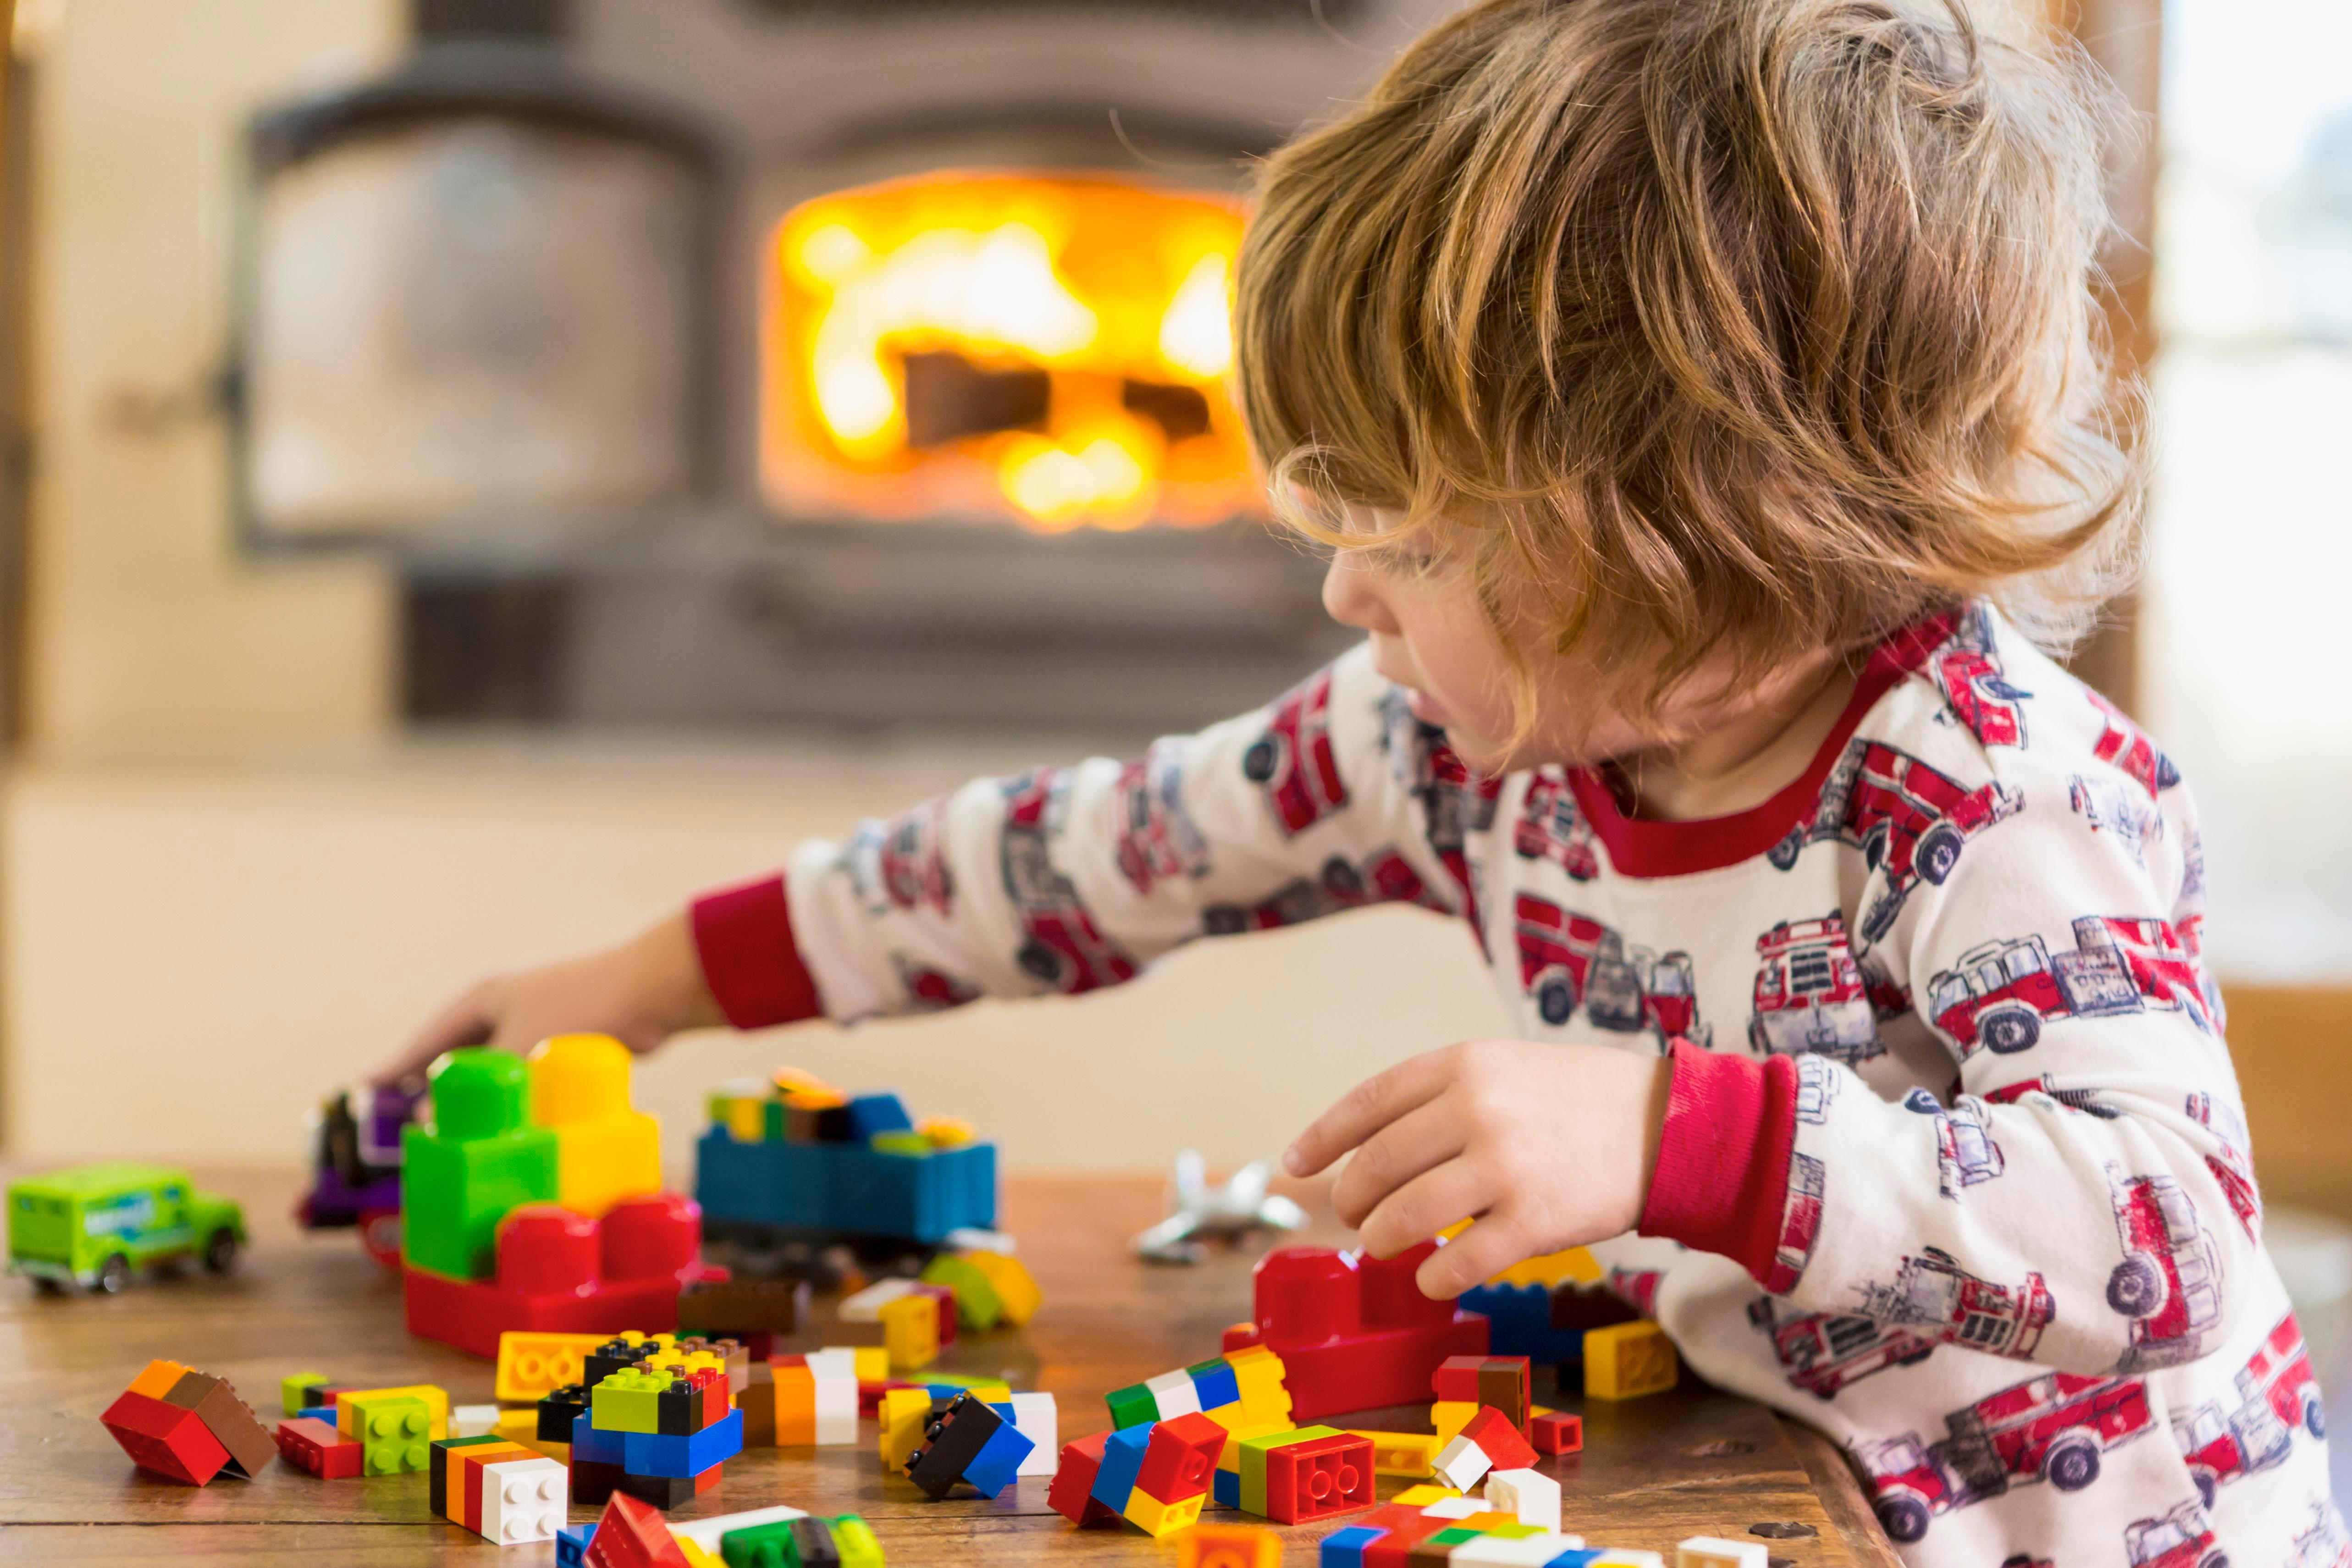 Kids who play with Lego and video games 'develop a better spatial awareness later in life'